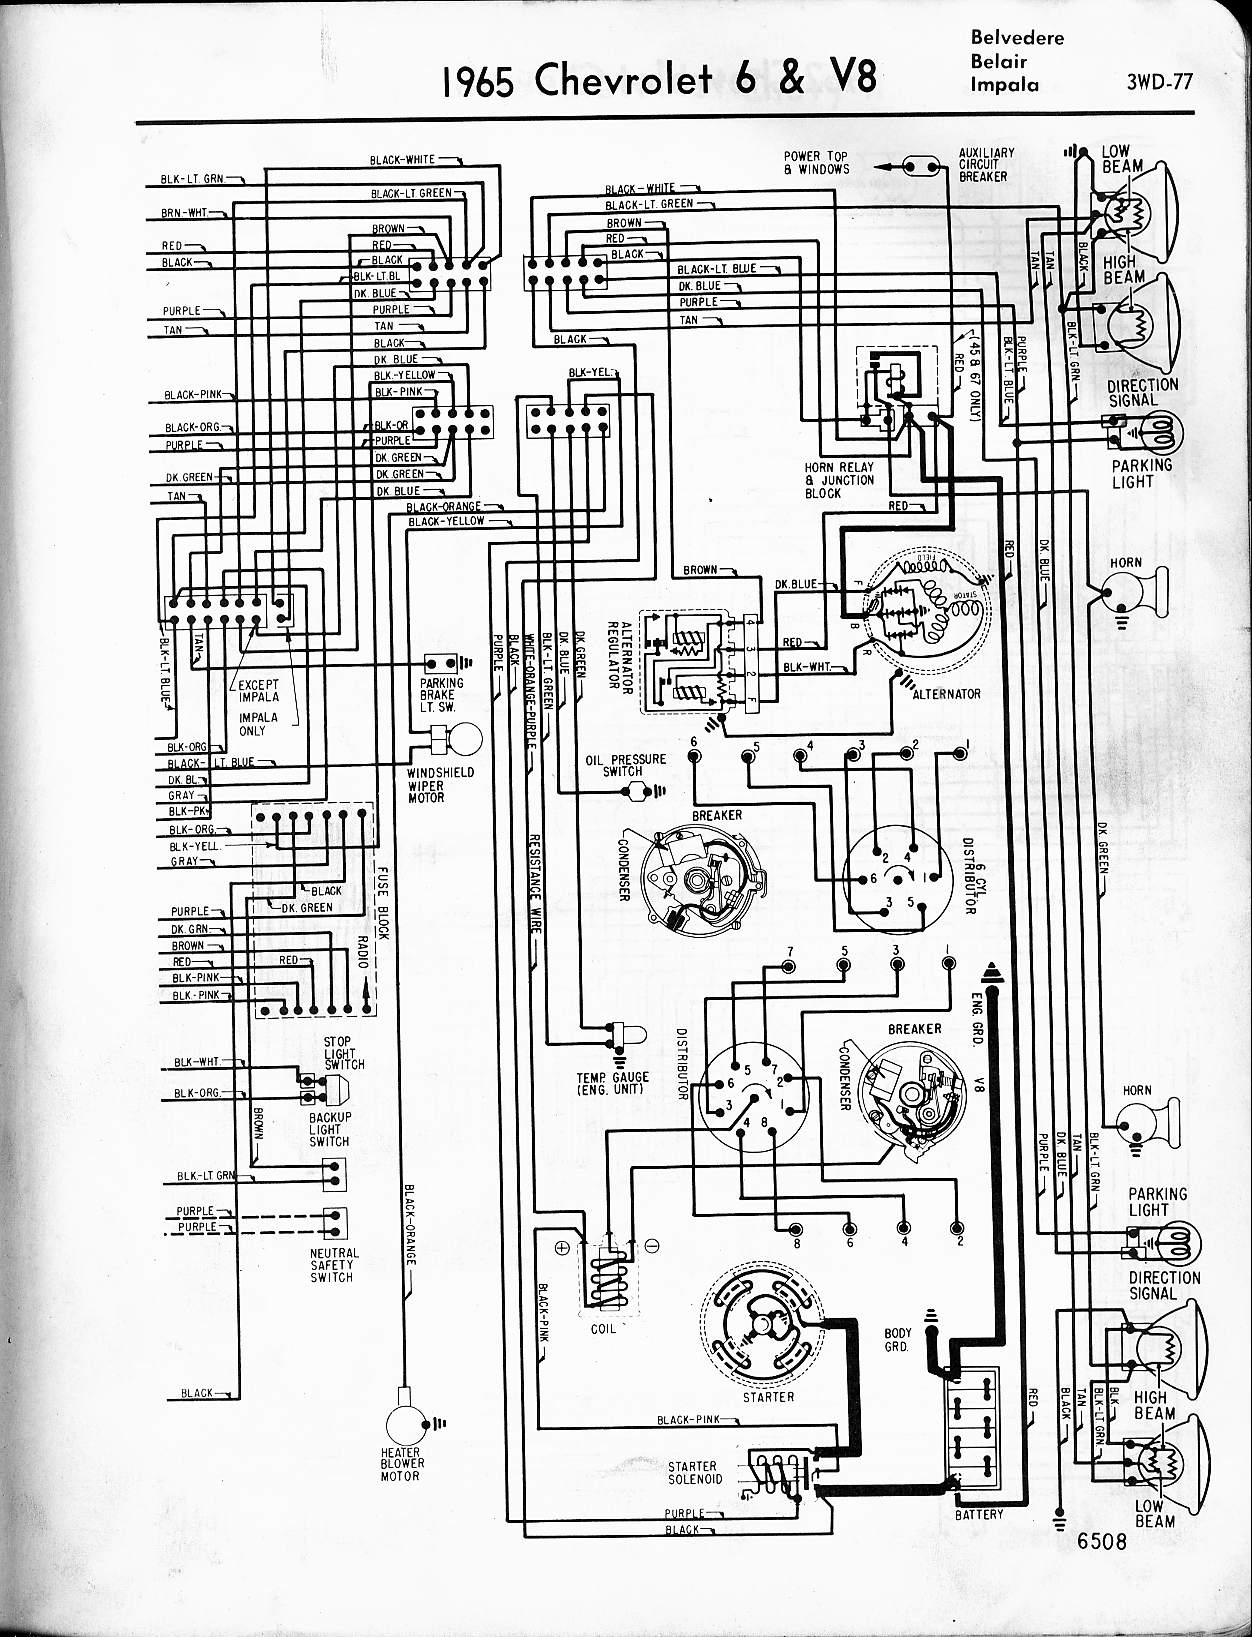 1965 Chevelle Wiring Diagram Data Wiring Schema 1983 Chevrolet El Camino  Wiring-Diagram 1971 Chevelle El Camino Wiring Diagram